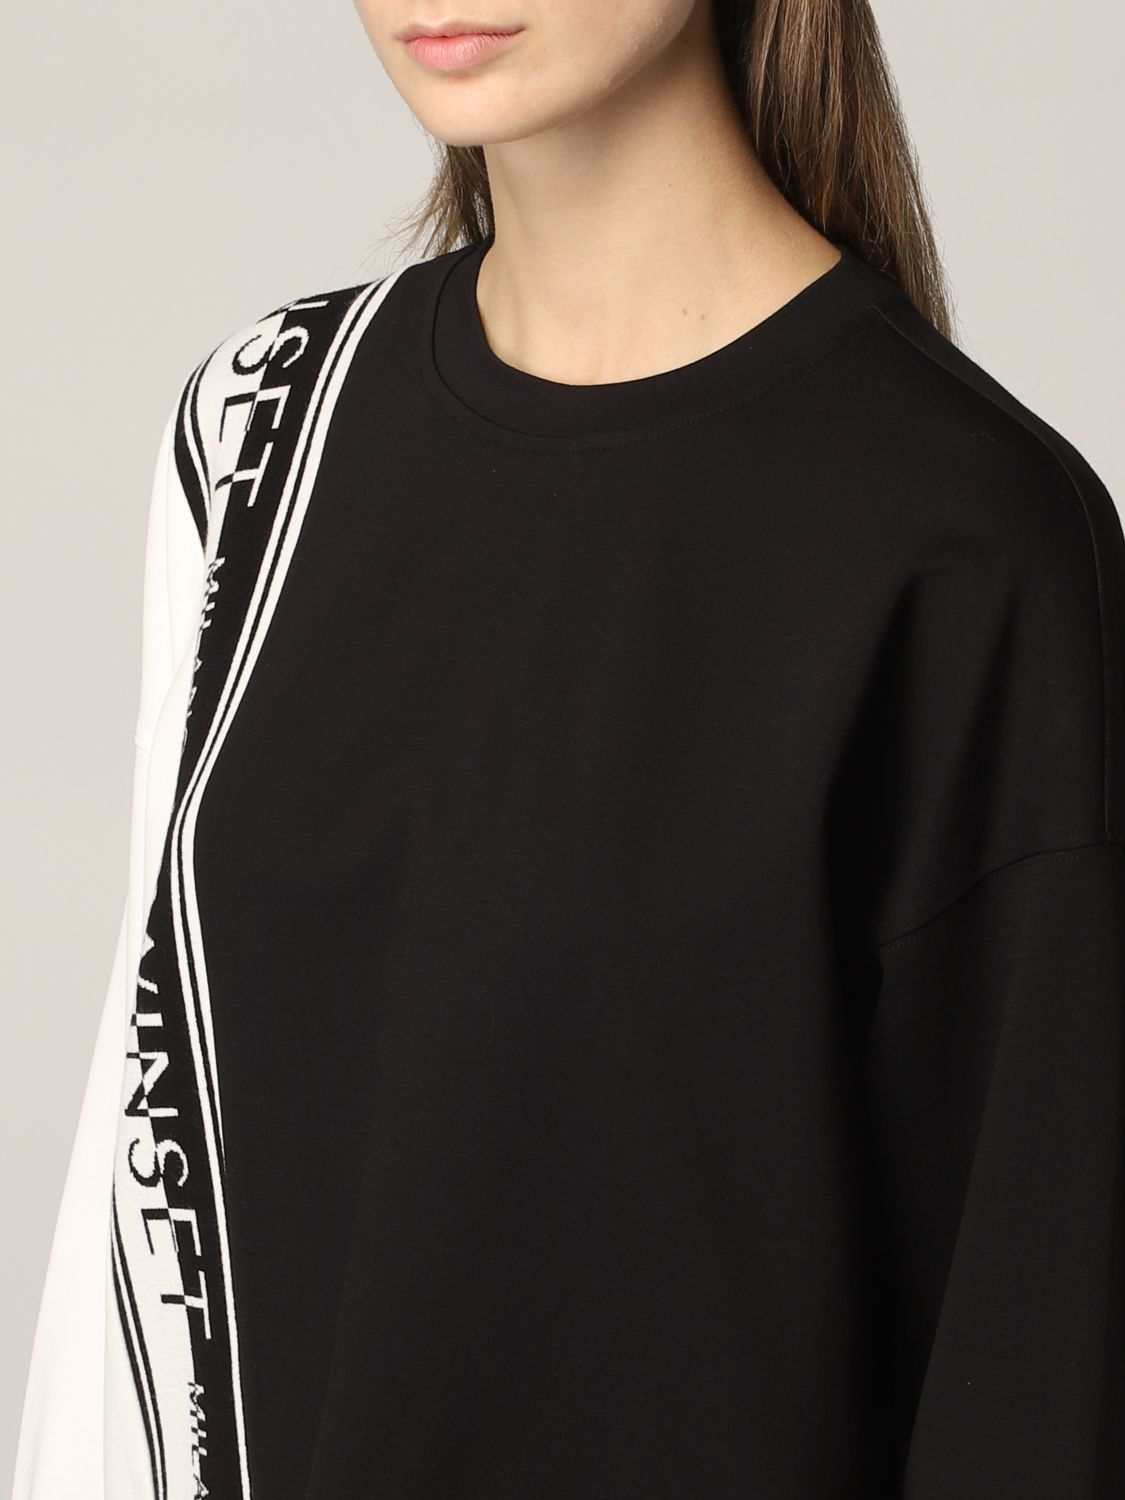 SHOPPING ON LINE TWINSET MILANO FELPA IN MAGLIA CON LOGO NEW COLLECTION PREVIEW FALL WINTER 2022